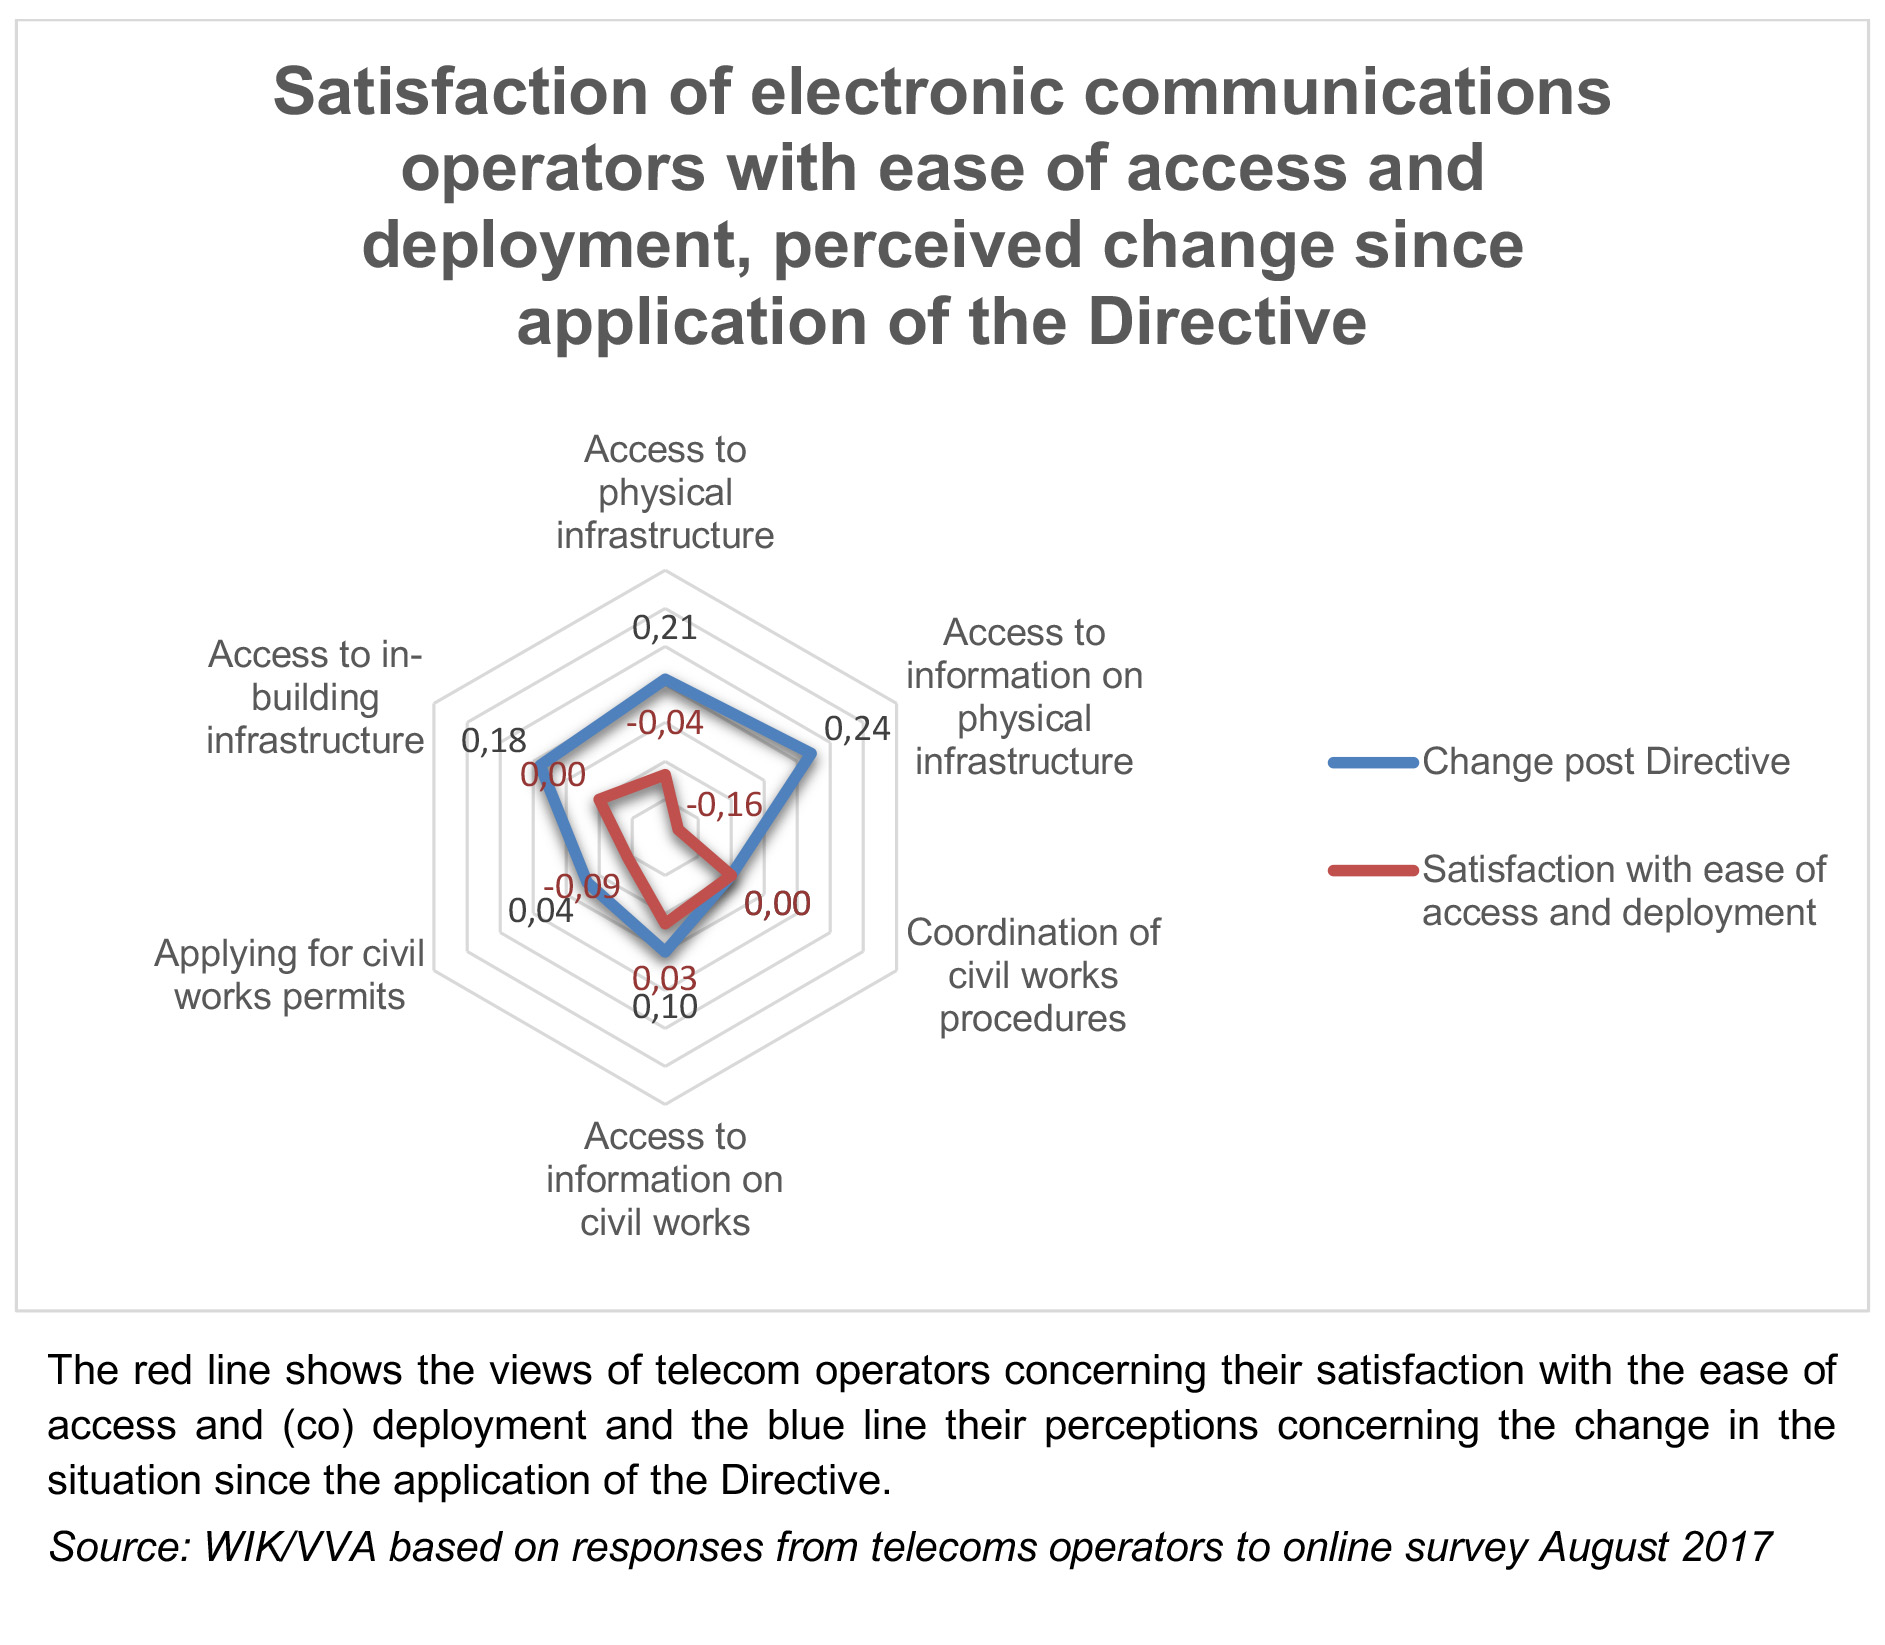 Graph showing satisfaction of electronic communications operators with ease of access and deployment, perceived change since application of the Directive